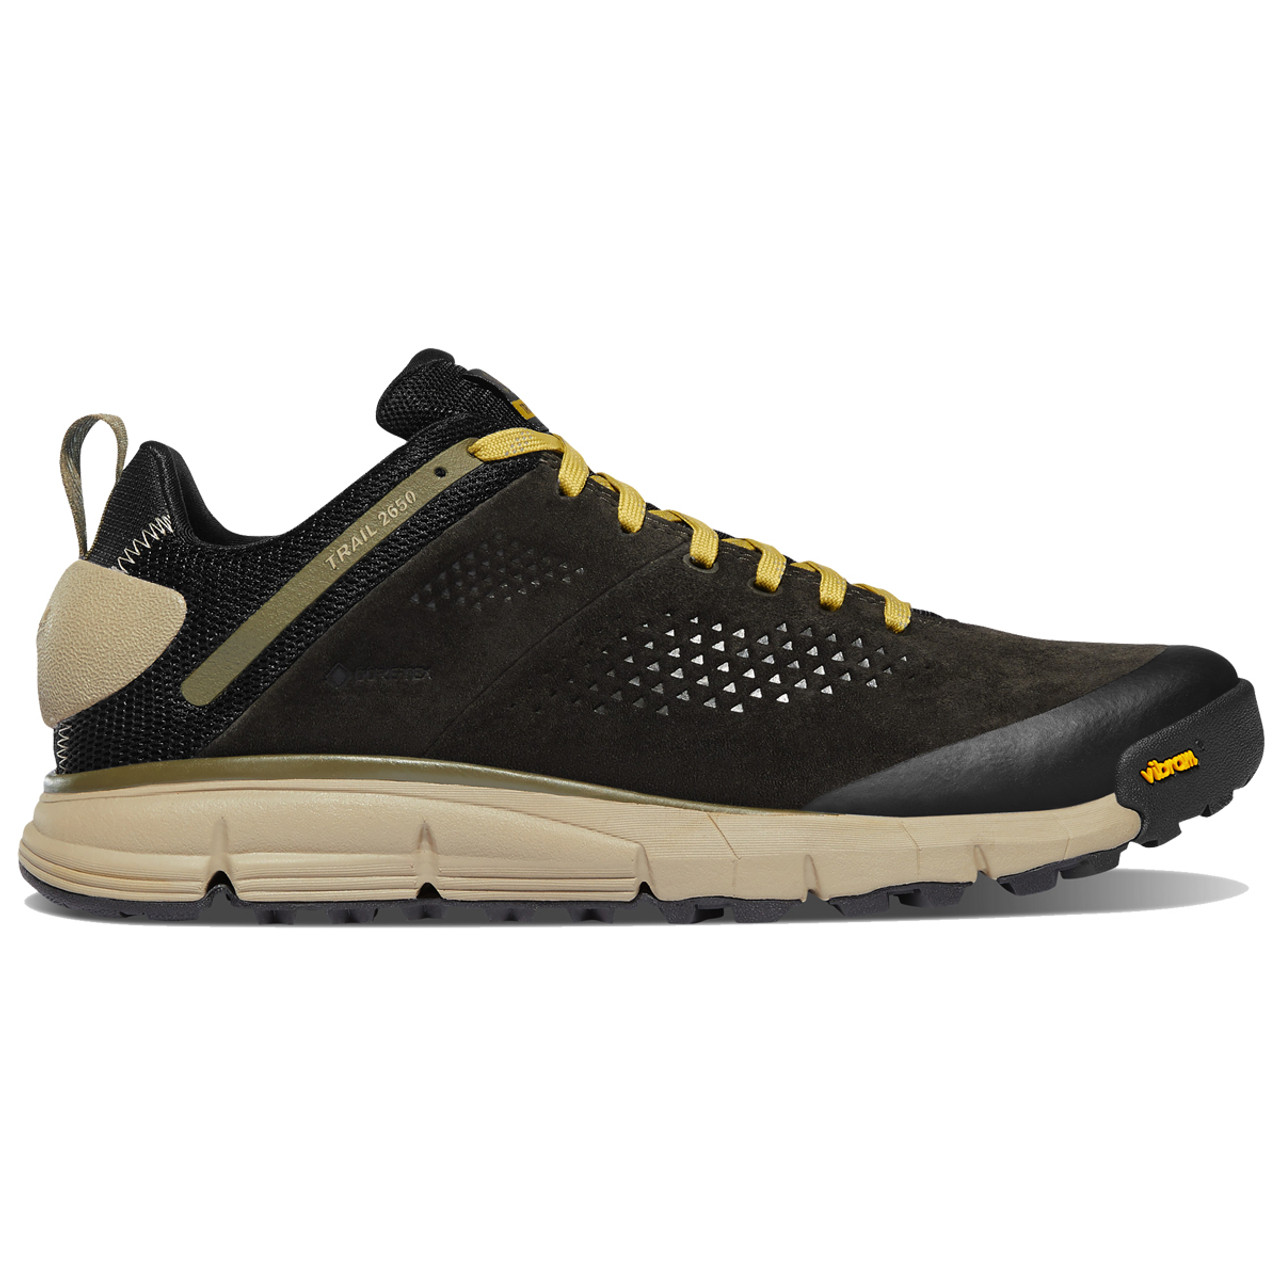 Danner 61287 Men/'s Trail 2650 GTX Black Olive//Flax Yellow GTX WP Hiking Shoes